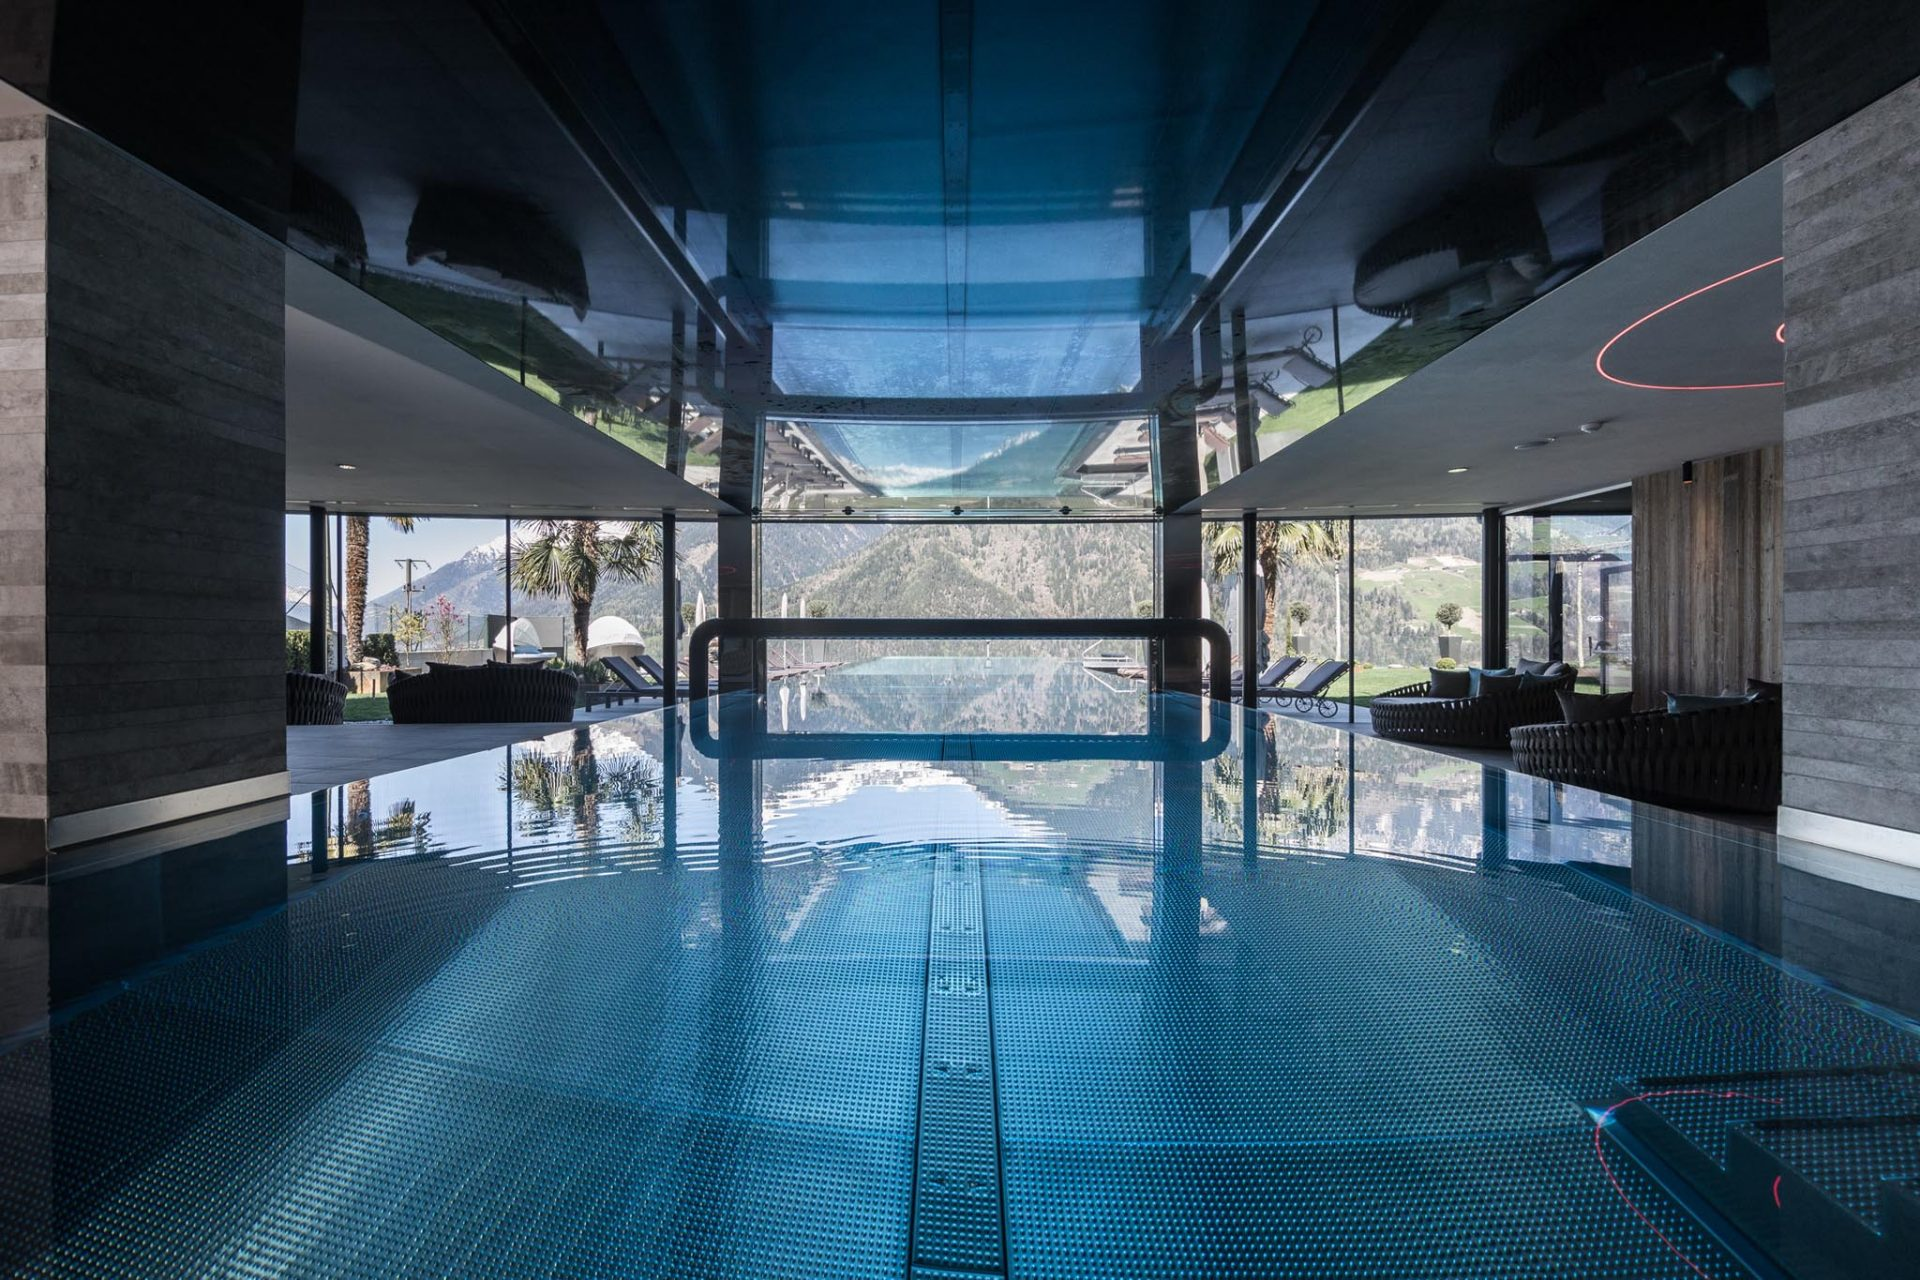 ... Hotel Sonnenparadies Underwater swimming pool door Hotel Sonnenparadies ... & Underwater doors for swimming pools - Automatic doors - glass and ...